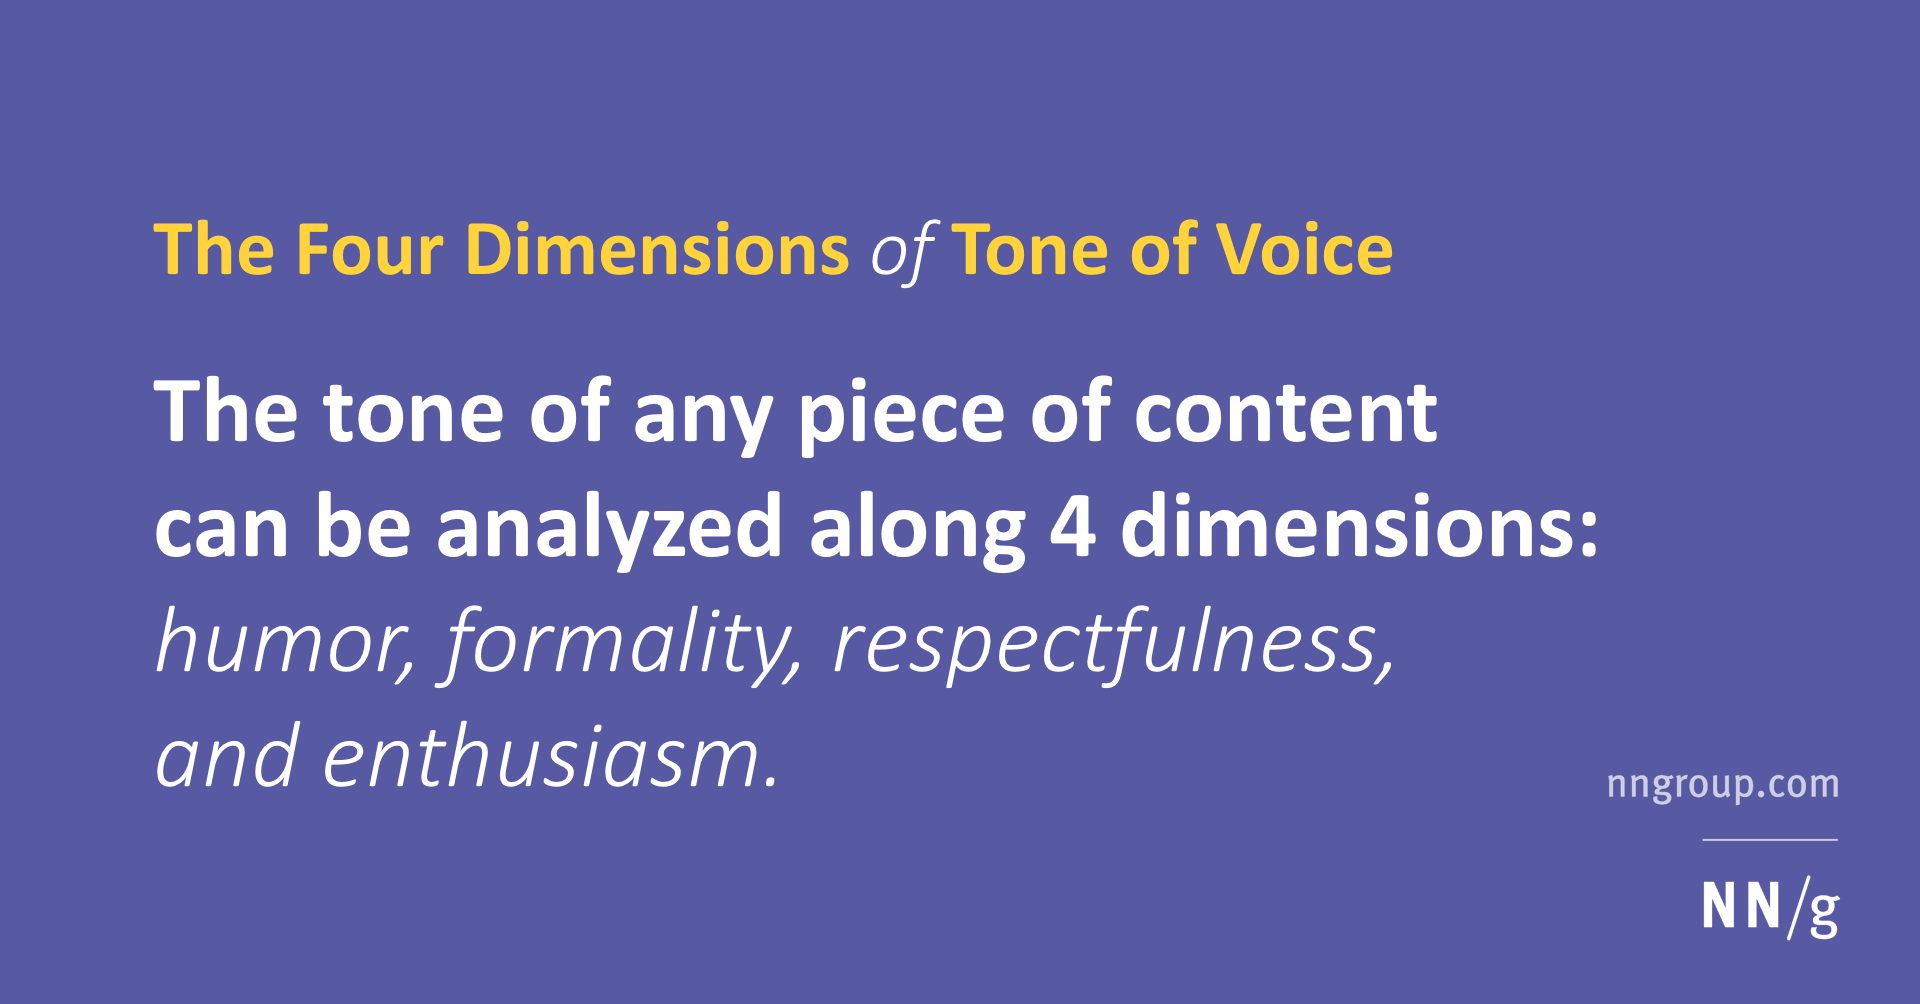 The Four Dimensions Of Tone Of Voice